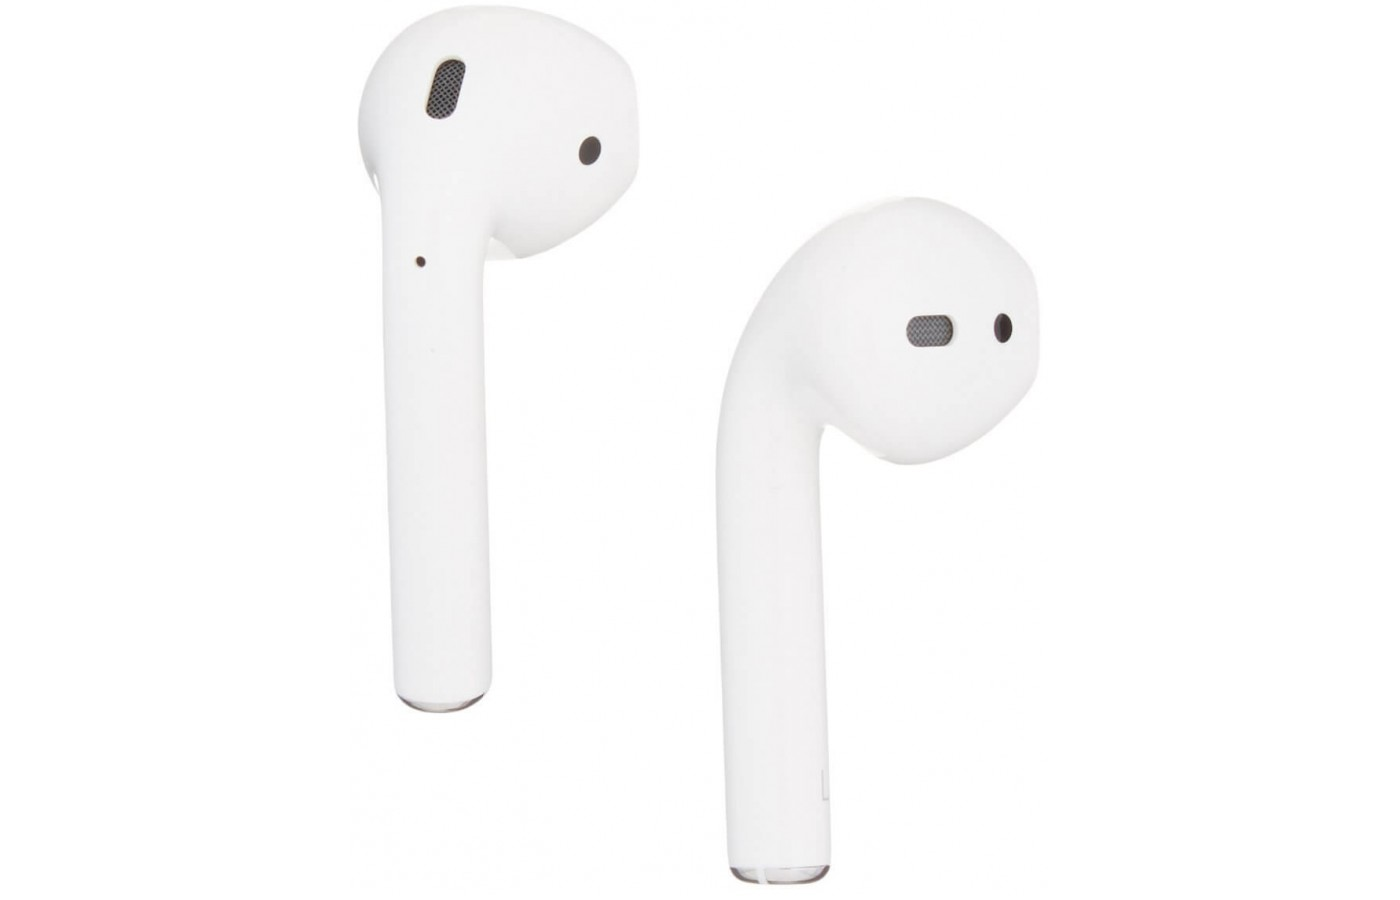 The Apple Air Pods feature a wireless design